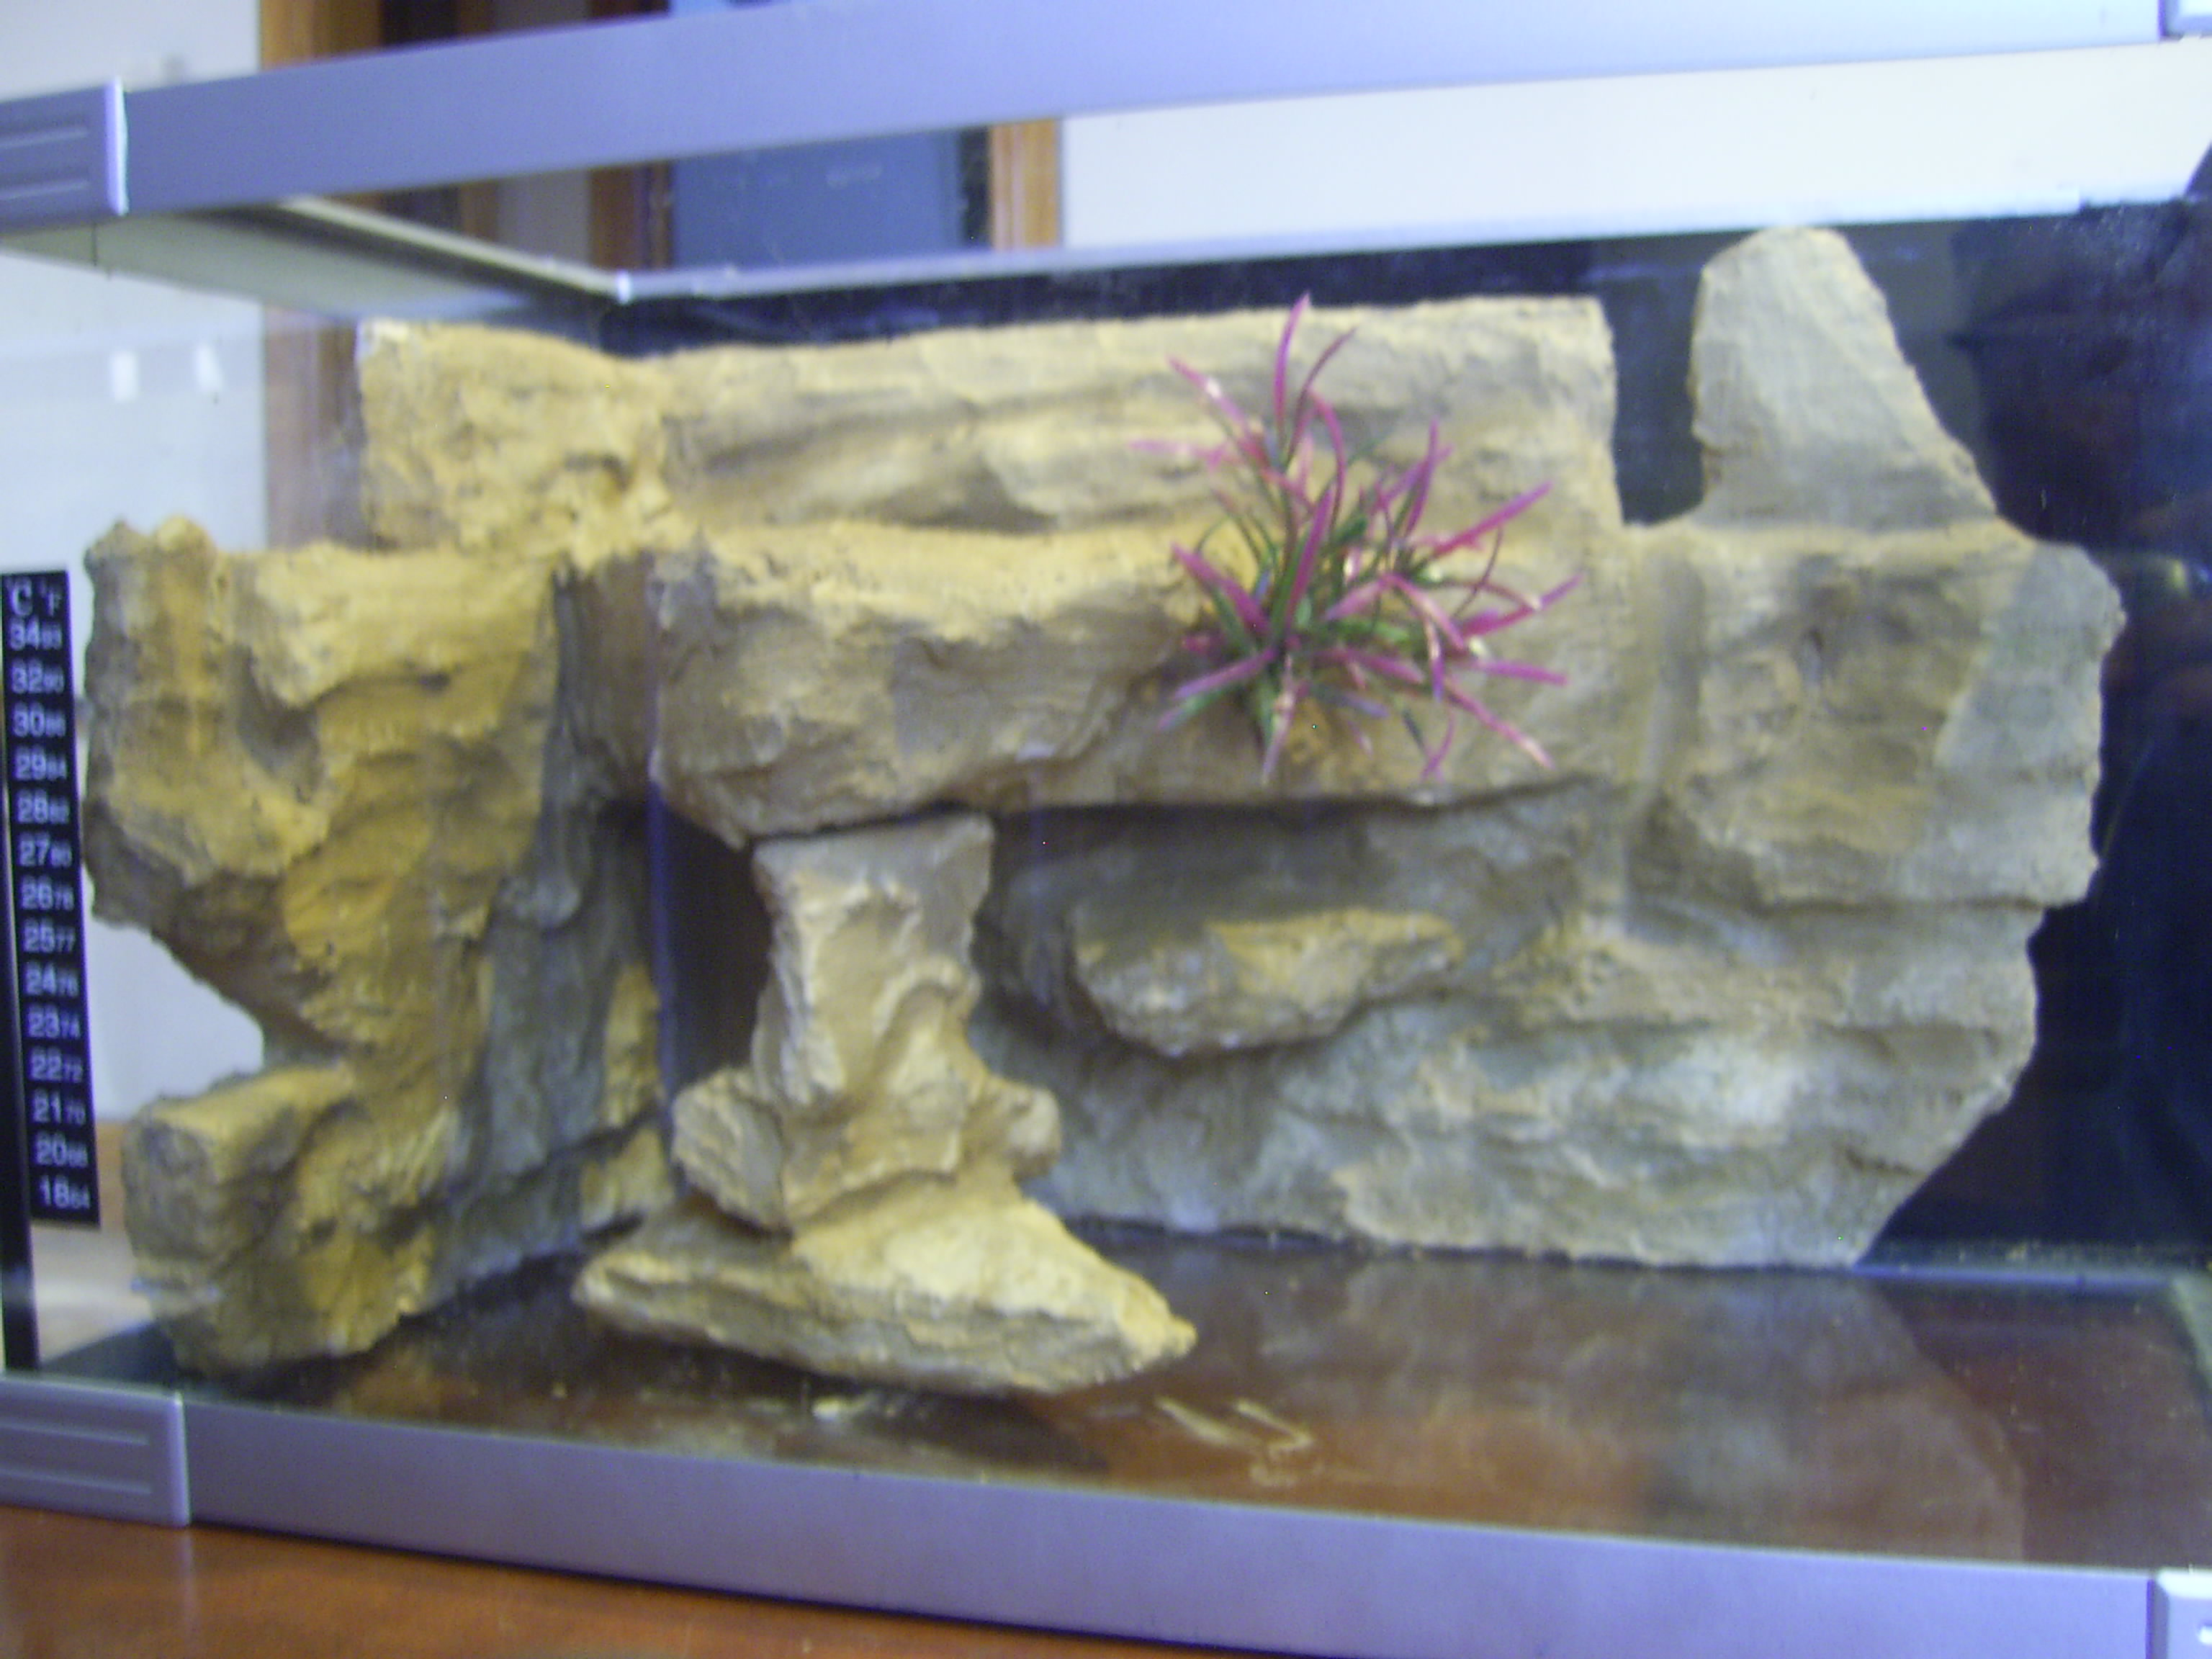 5 gallon fish tank background diy aquarium background